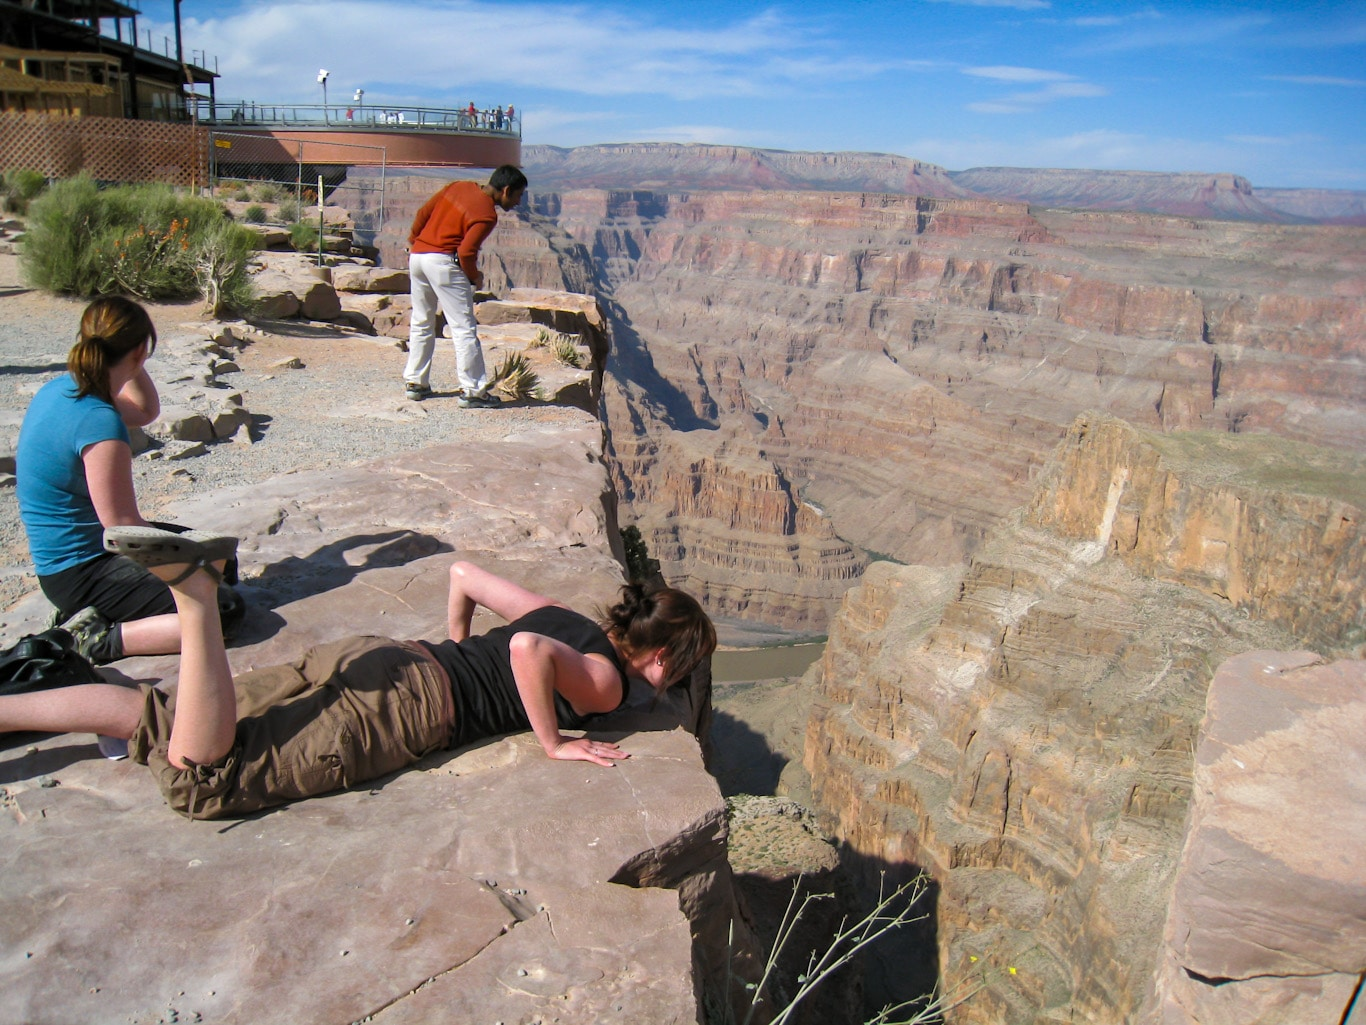 Leaving Las Vegas? Here Are 7 Things To Do Outside Vegas